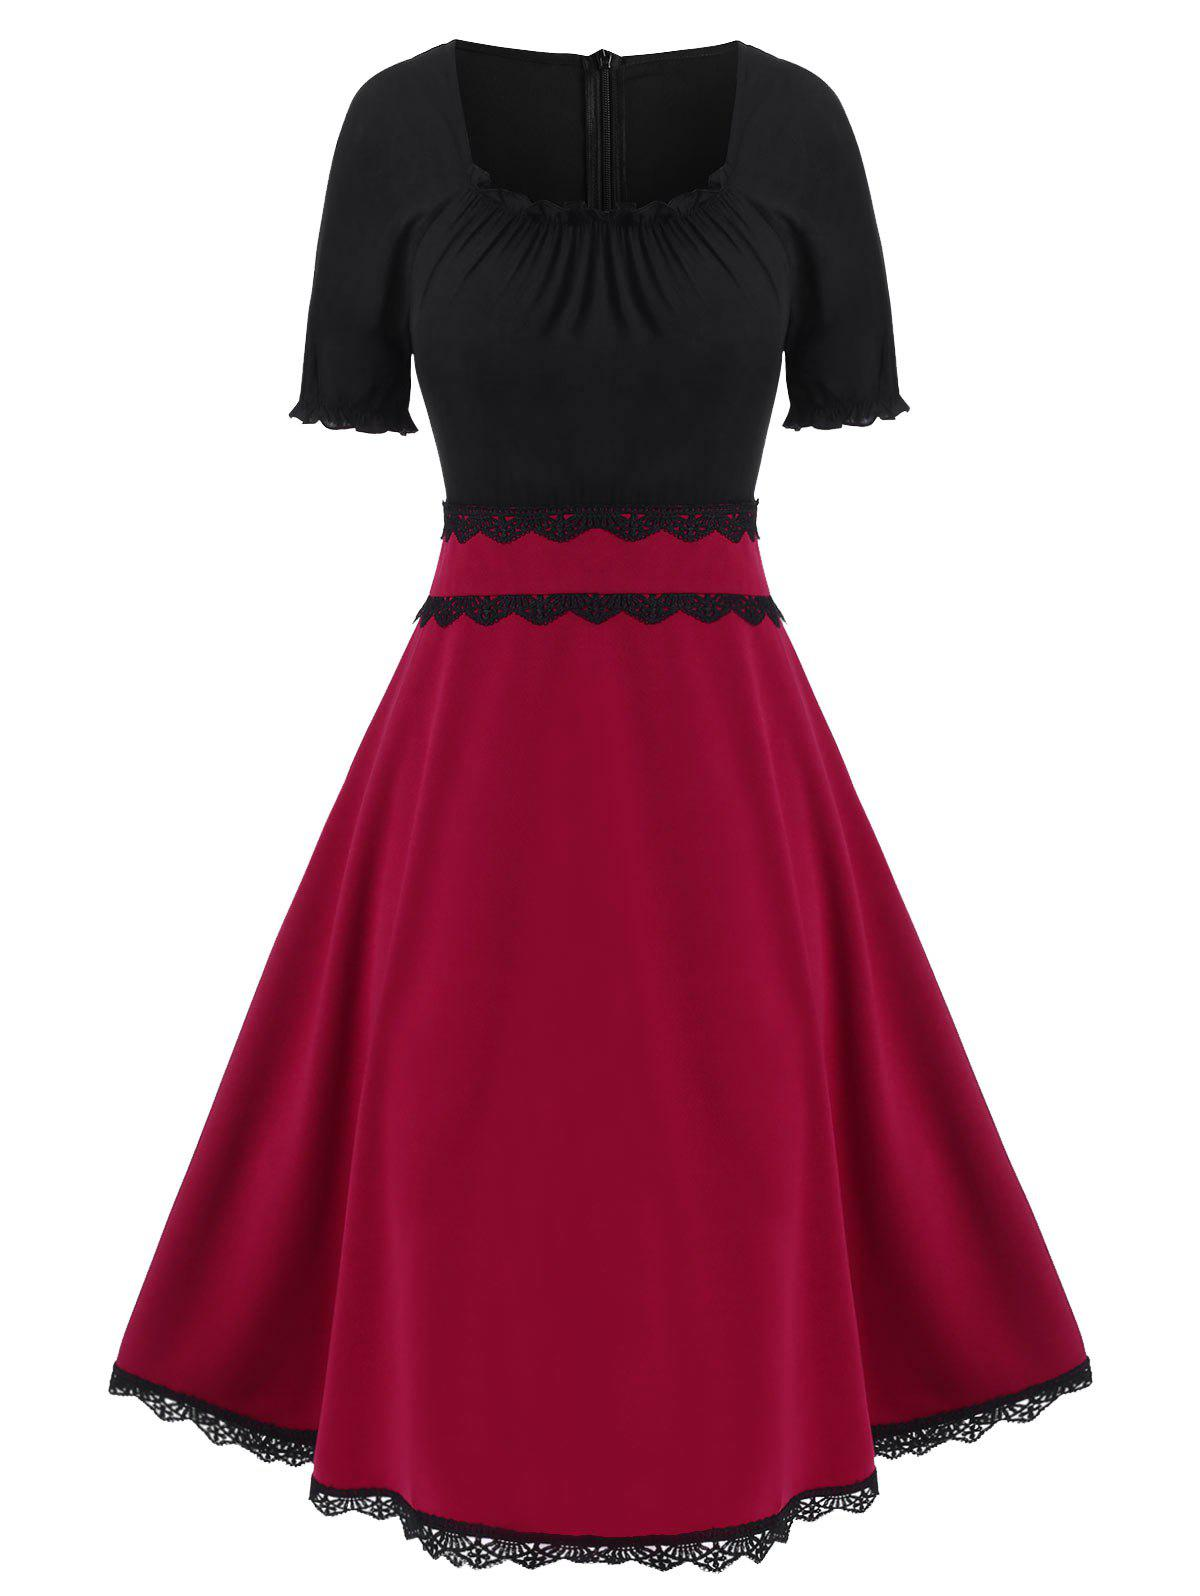 Discount Contrast Color Ruffled Trim High Waist A Line Dress